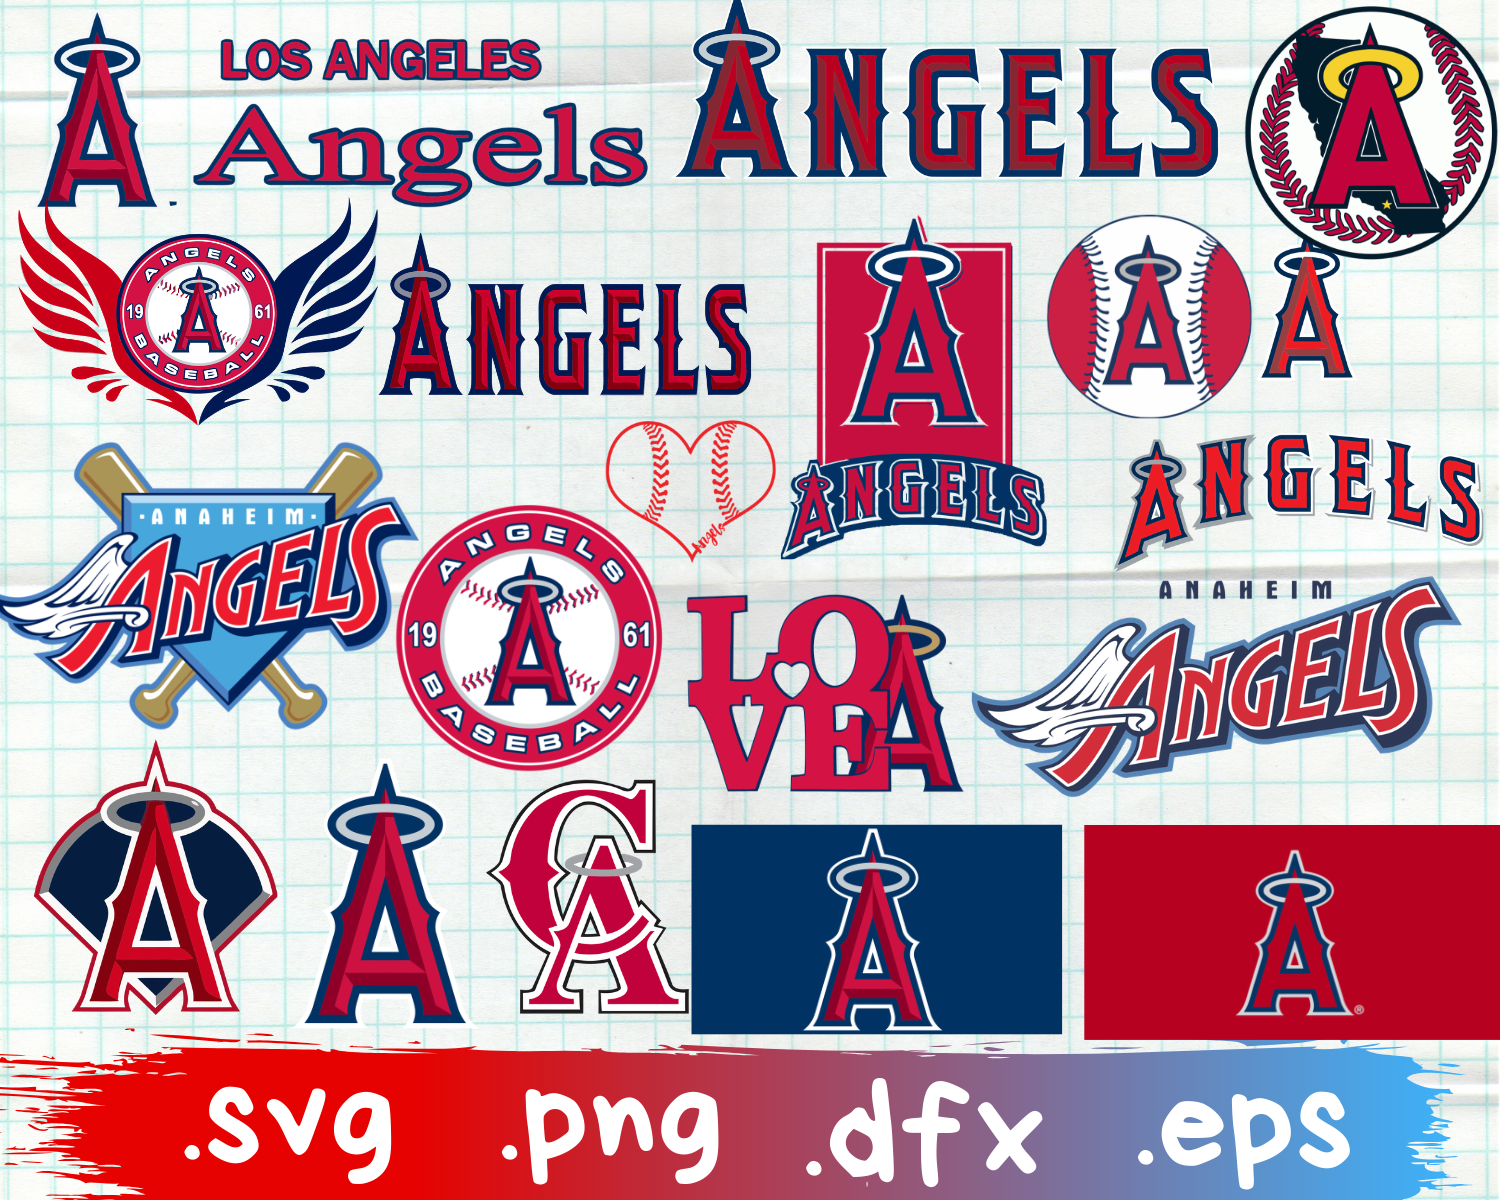 Clipartshop Los Angeles Angels Los Angeles Angels Svg Los Angeles Angels Logo Los Angeles Angels Clipart Los Angeles Angels Cricut Los Angeles Angels Angels Logo Personalized T Shirts